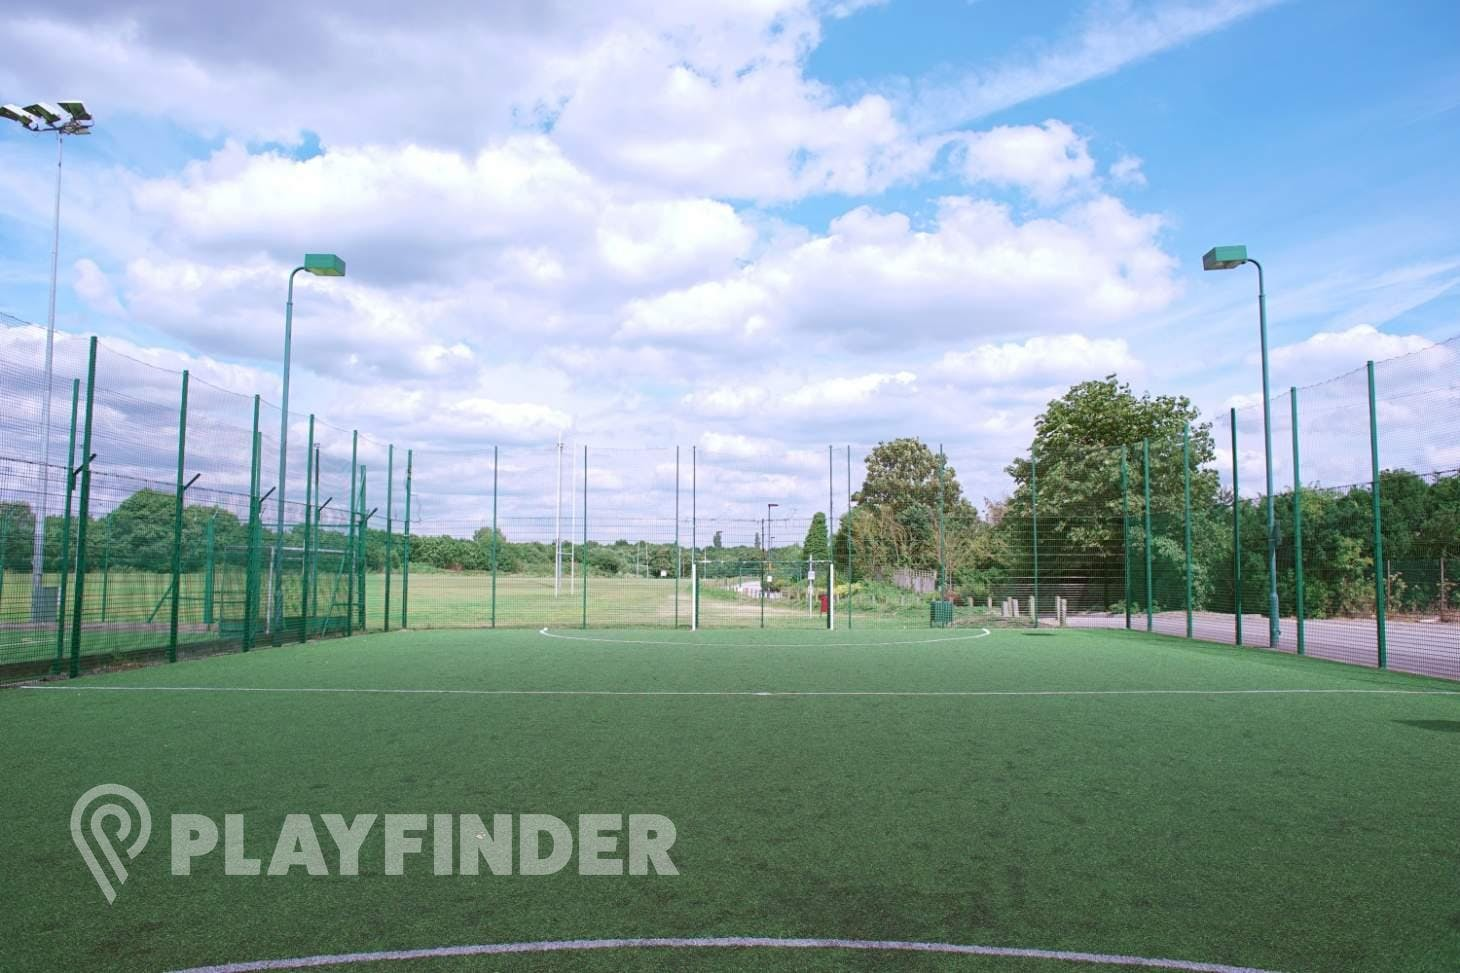 Braywick Park Gym and Pitches 5 a side   Astroturf football pitch